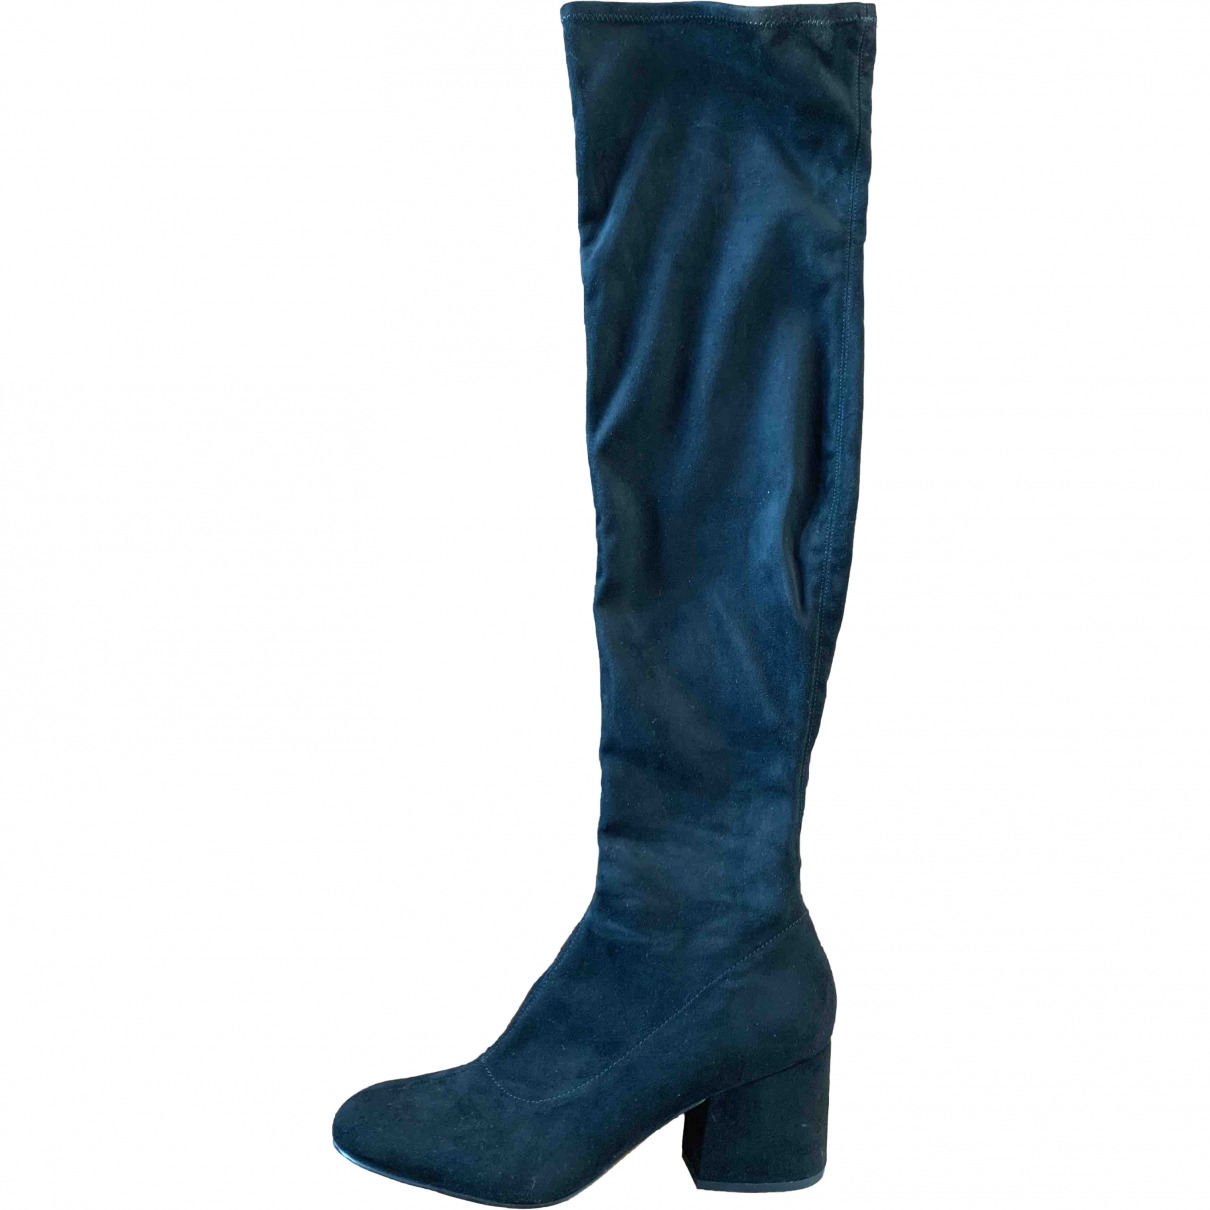 Kendall + Kylie \N Black Suede Boots for Women 9 US